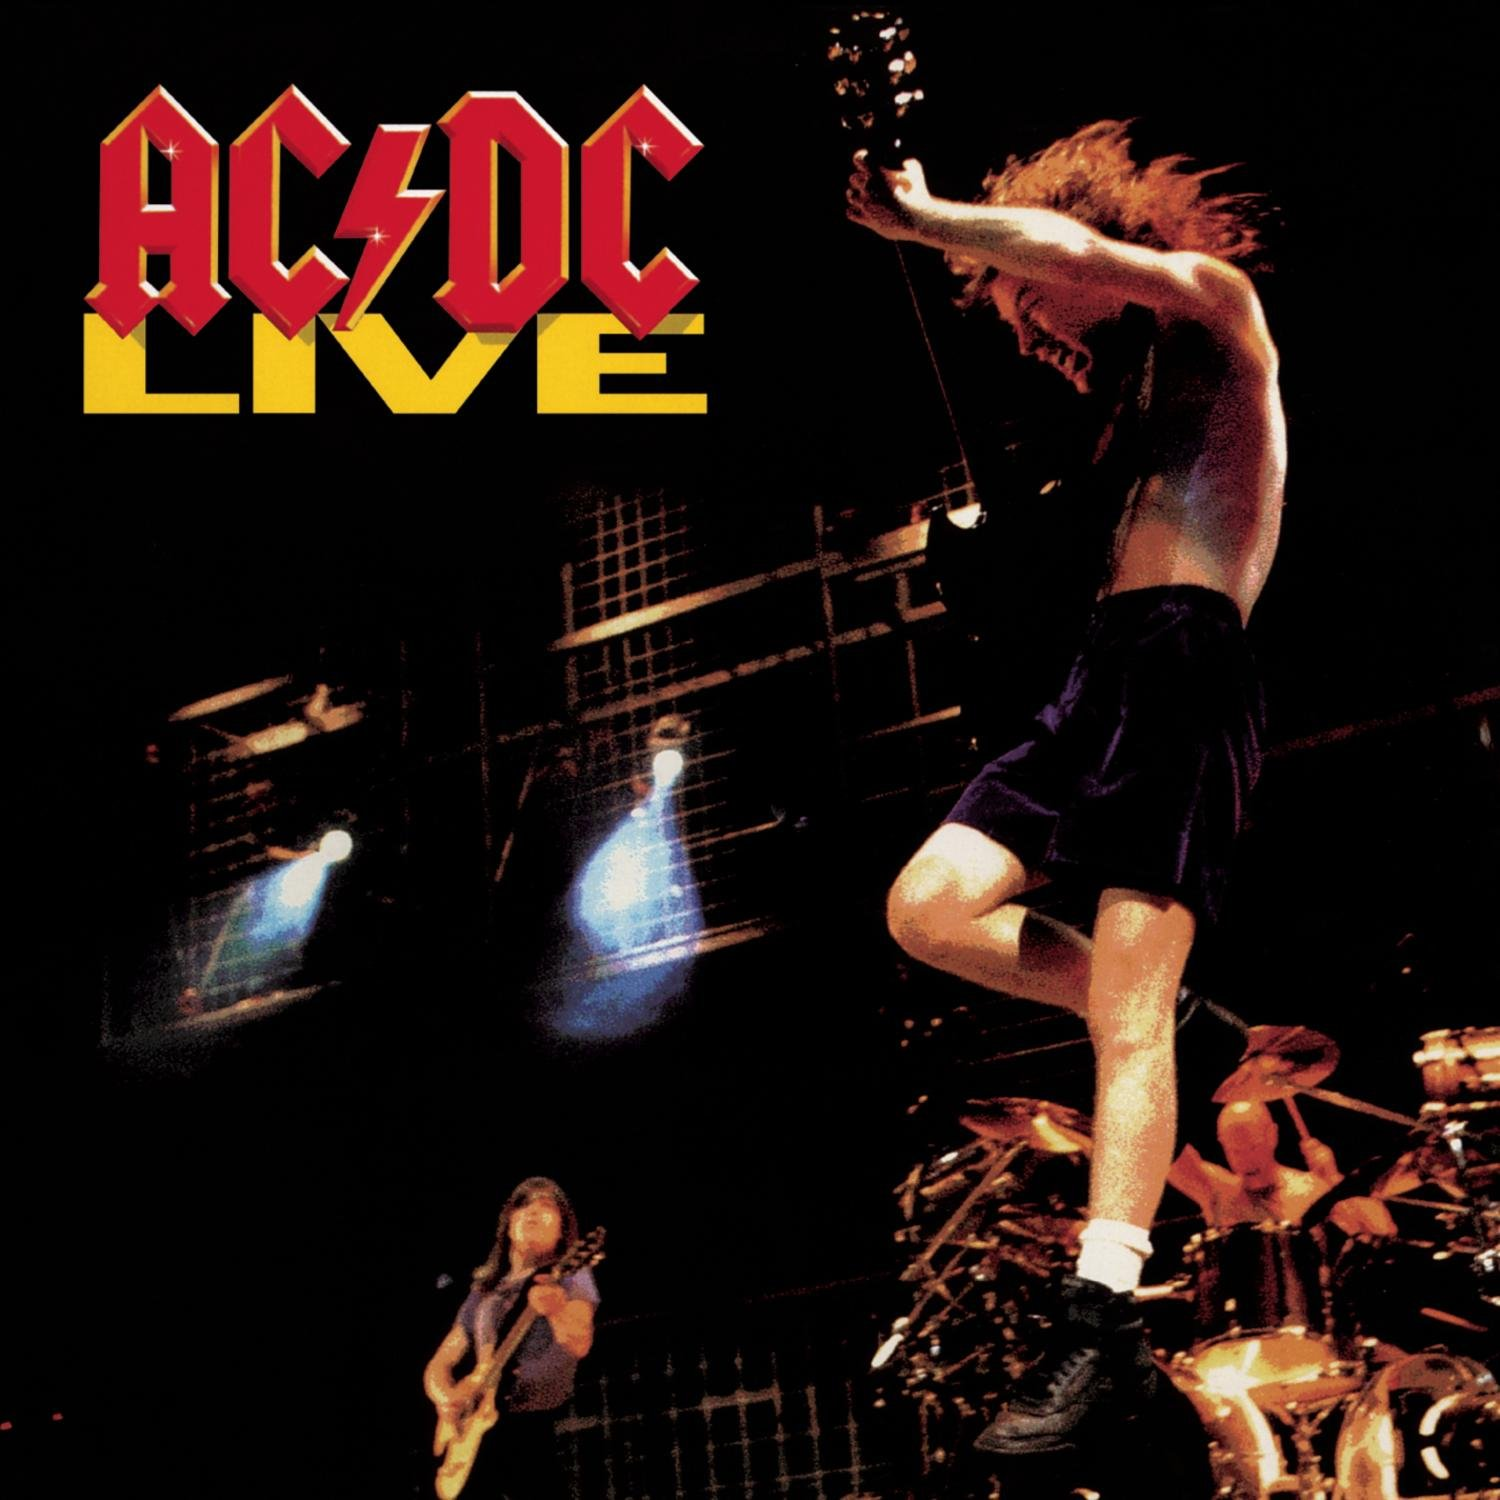 Top five live albums? - Page 2 71pC173hqVL._SL1500_